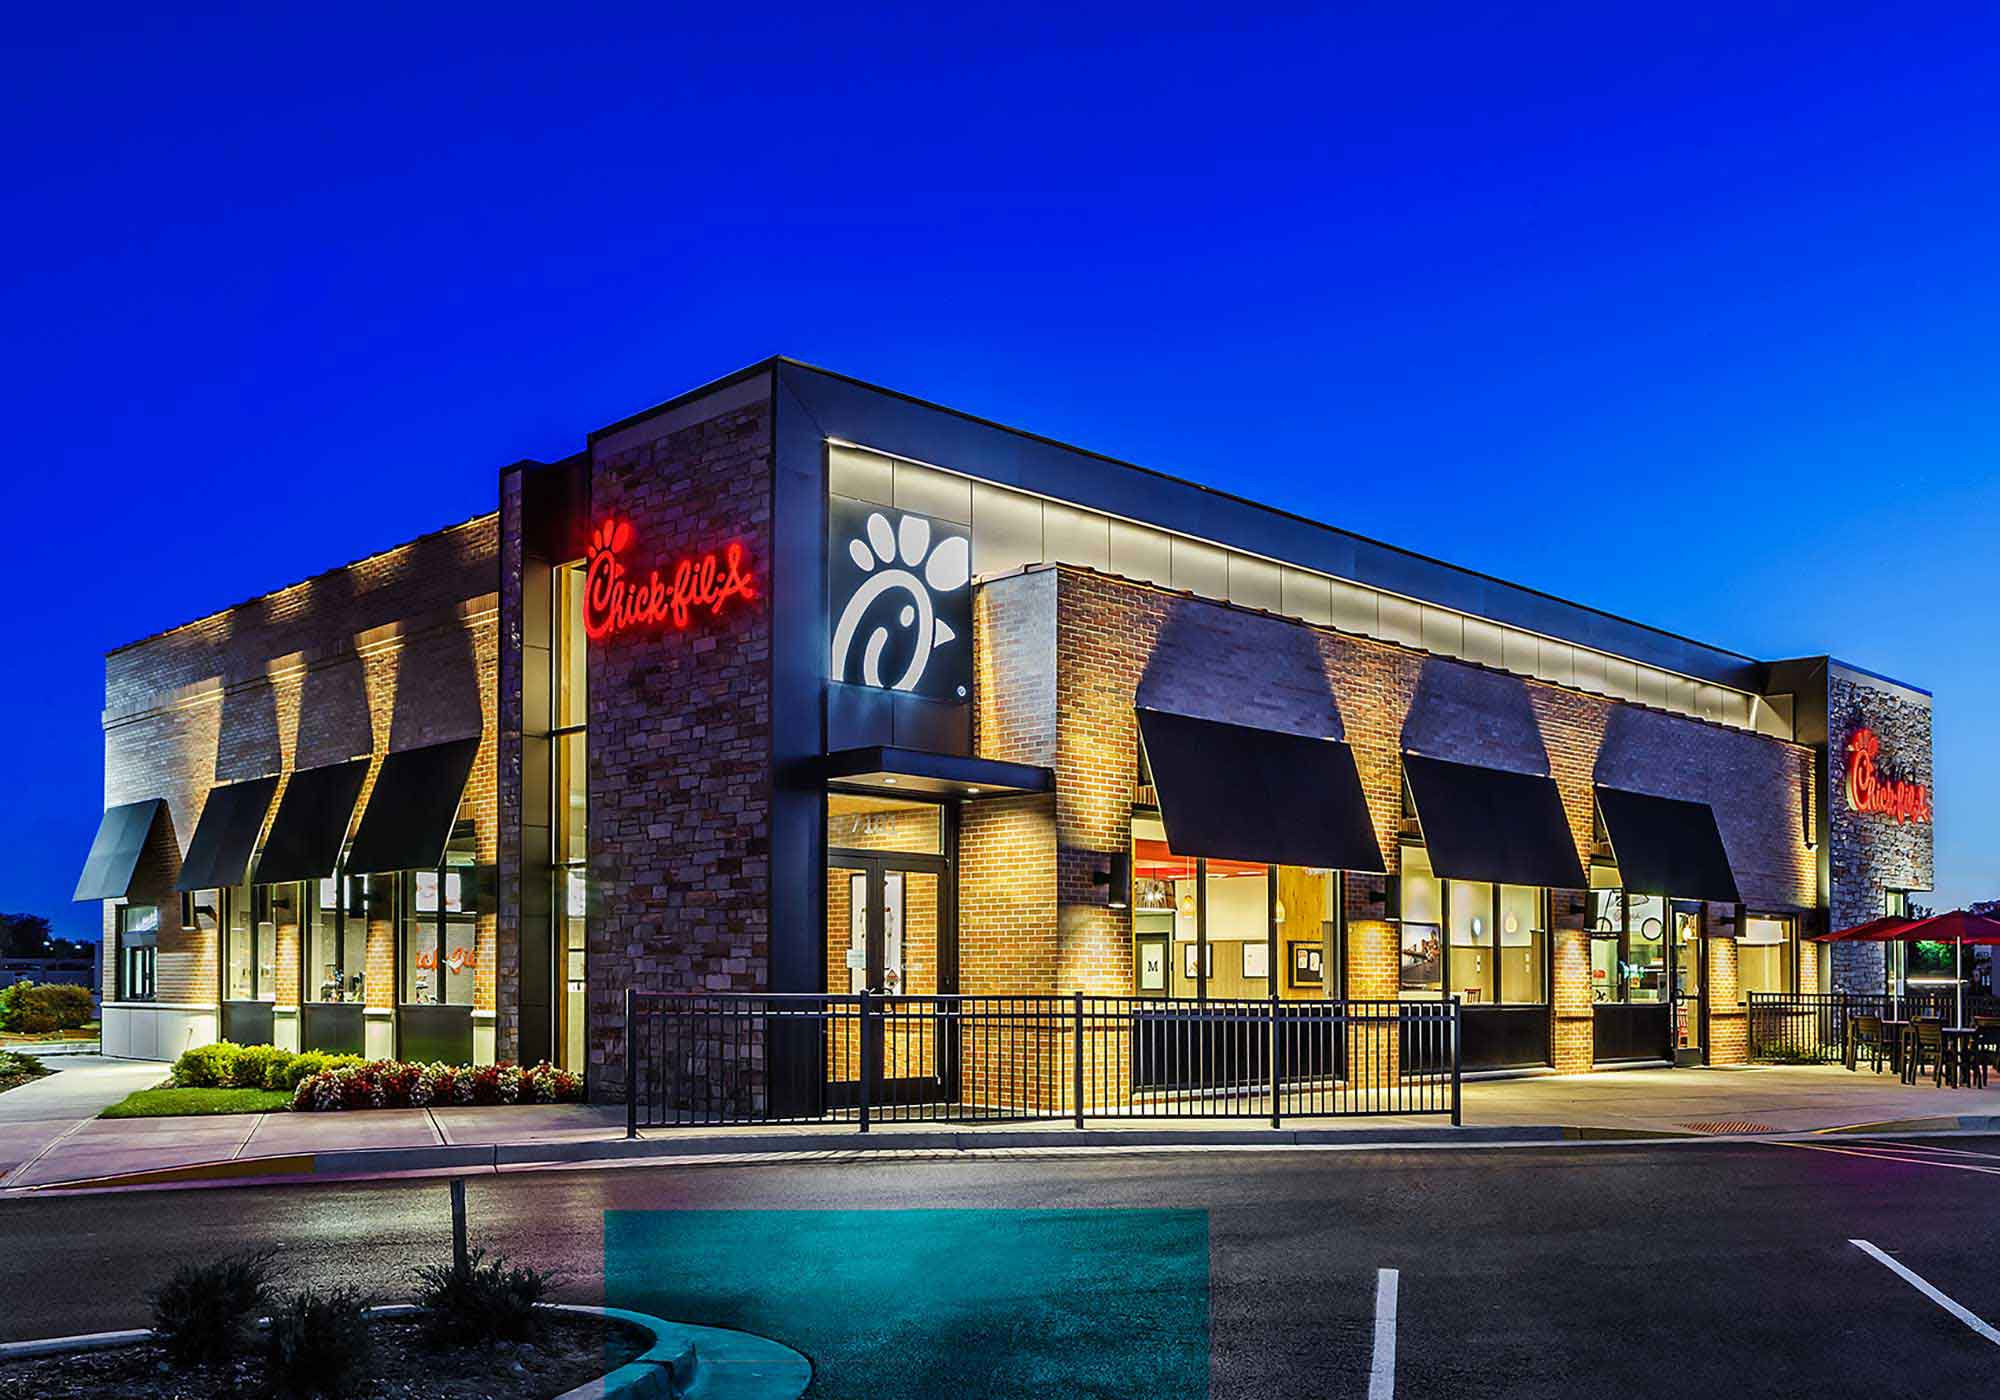 Exterior of Chic-Fil-A during the evening